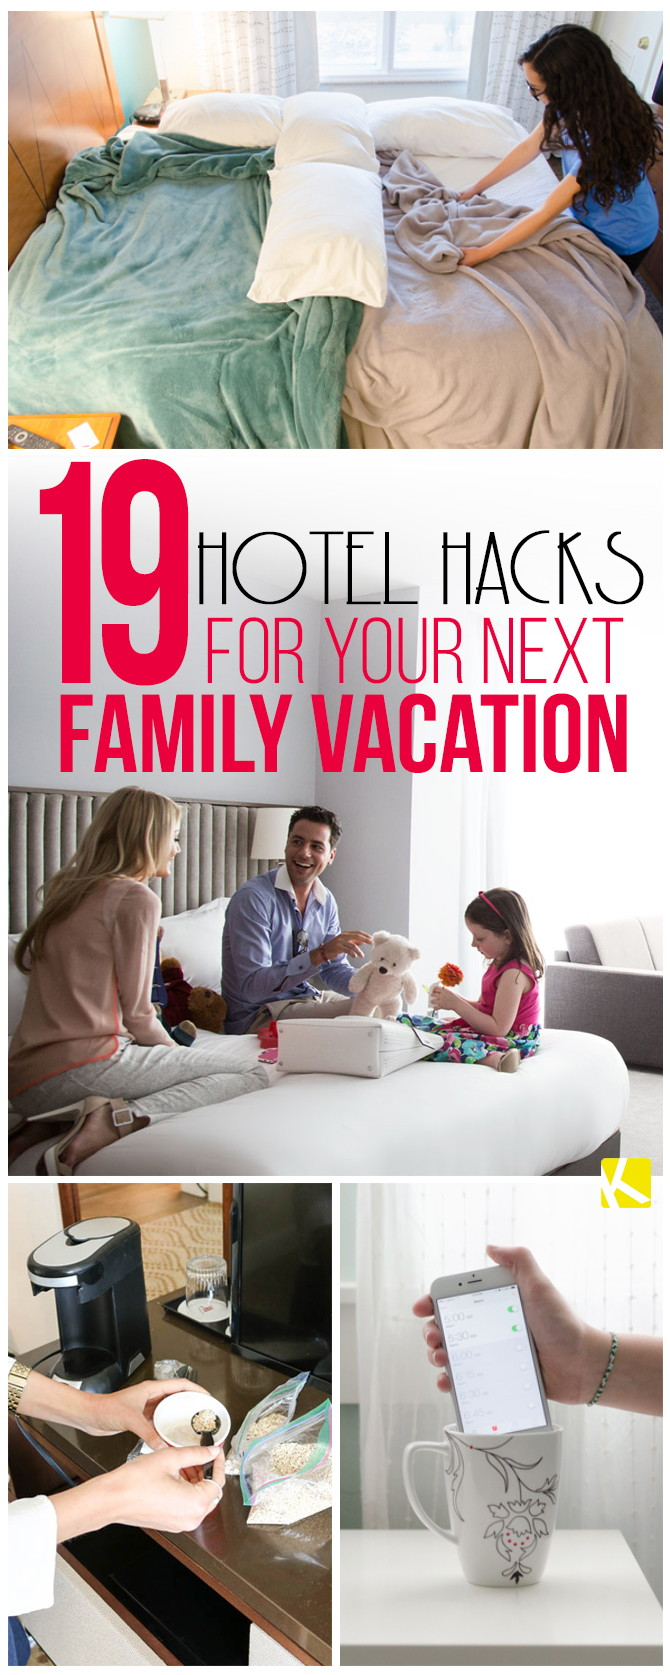 19 Clever Hotel Hacks For Your Next Family Vacation The